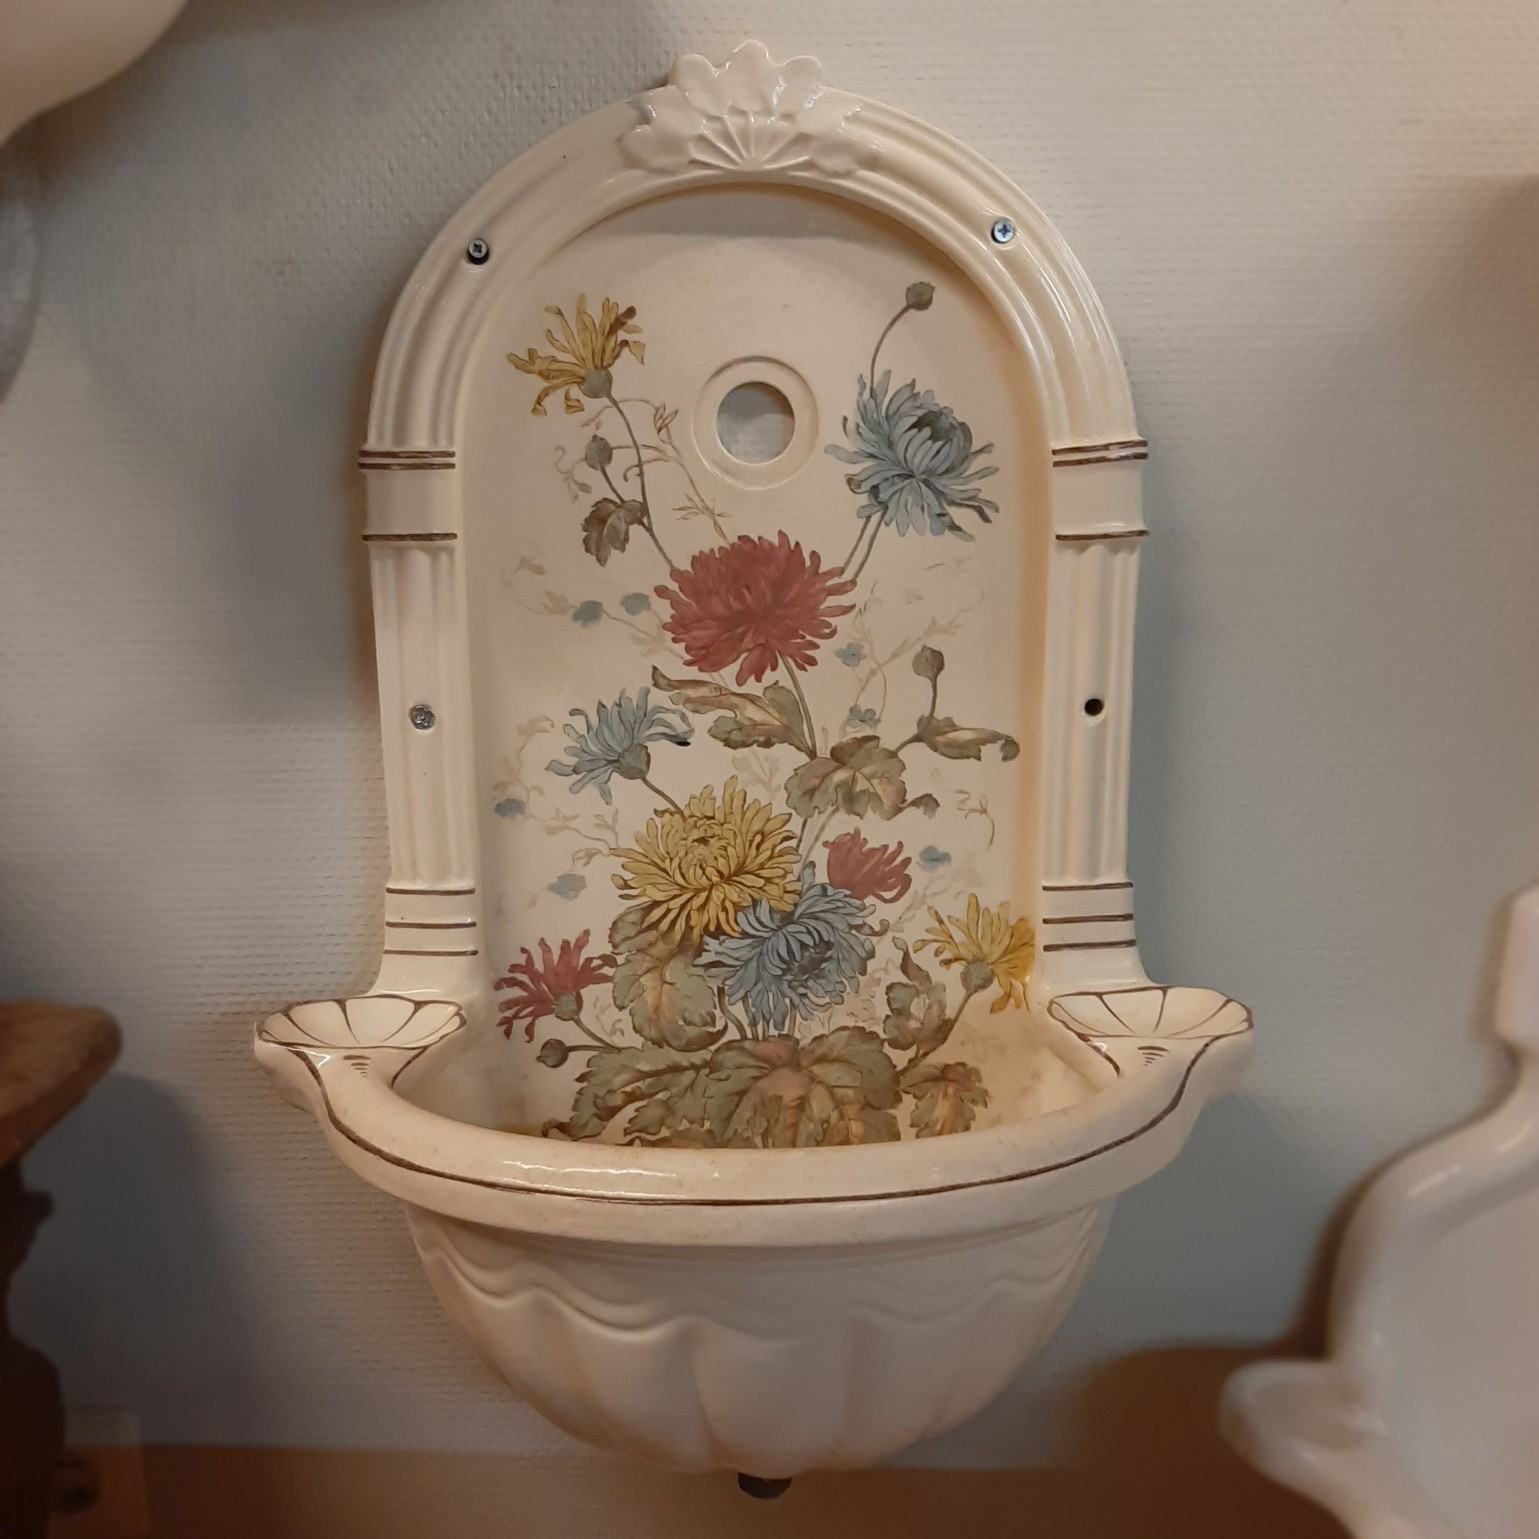 Old wall fountain with scallops and floral pattern